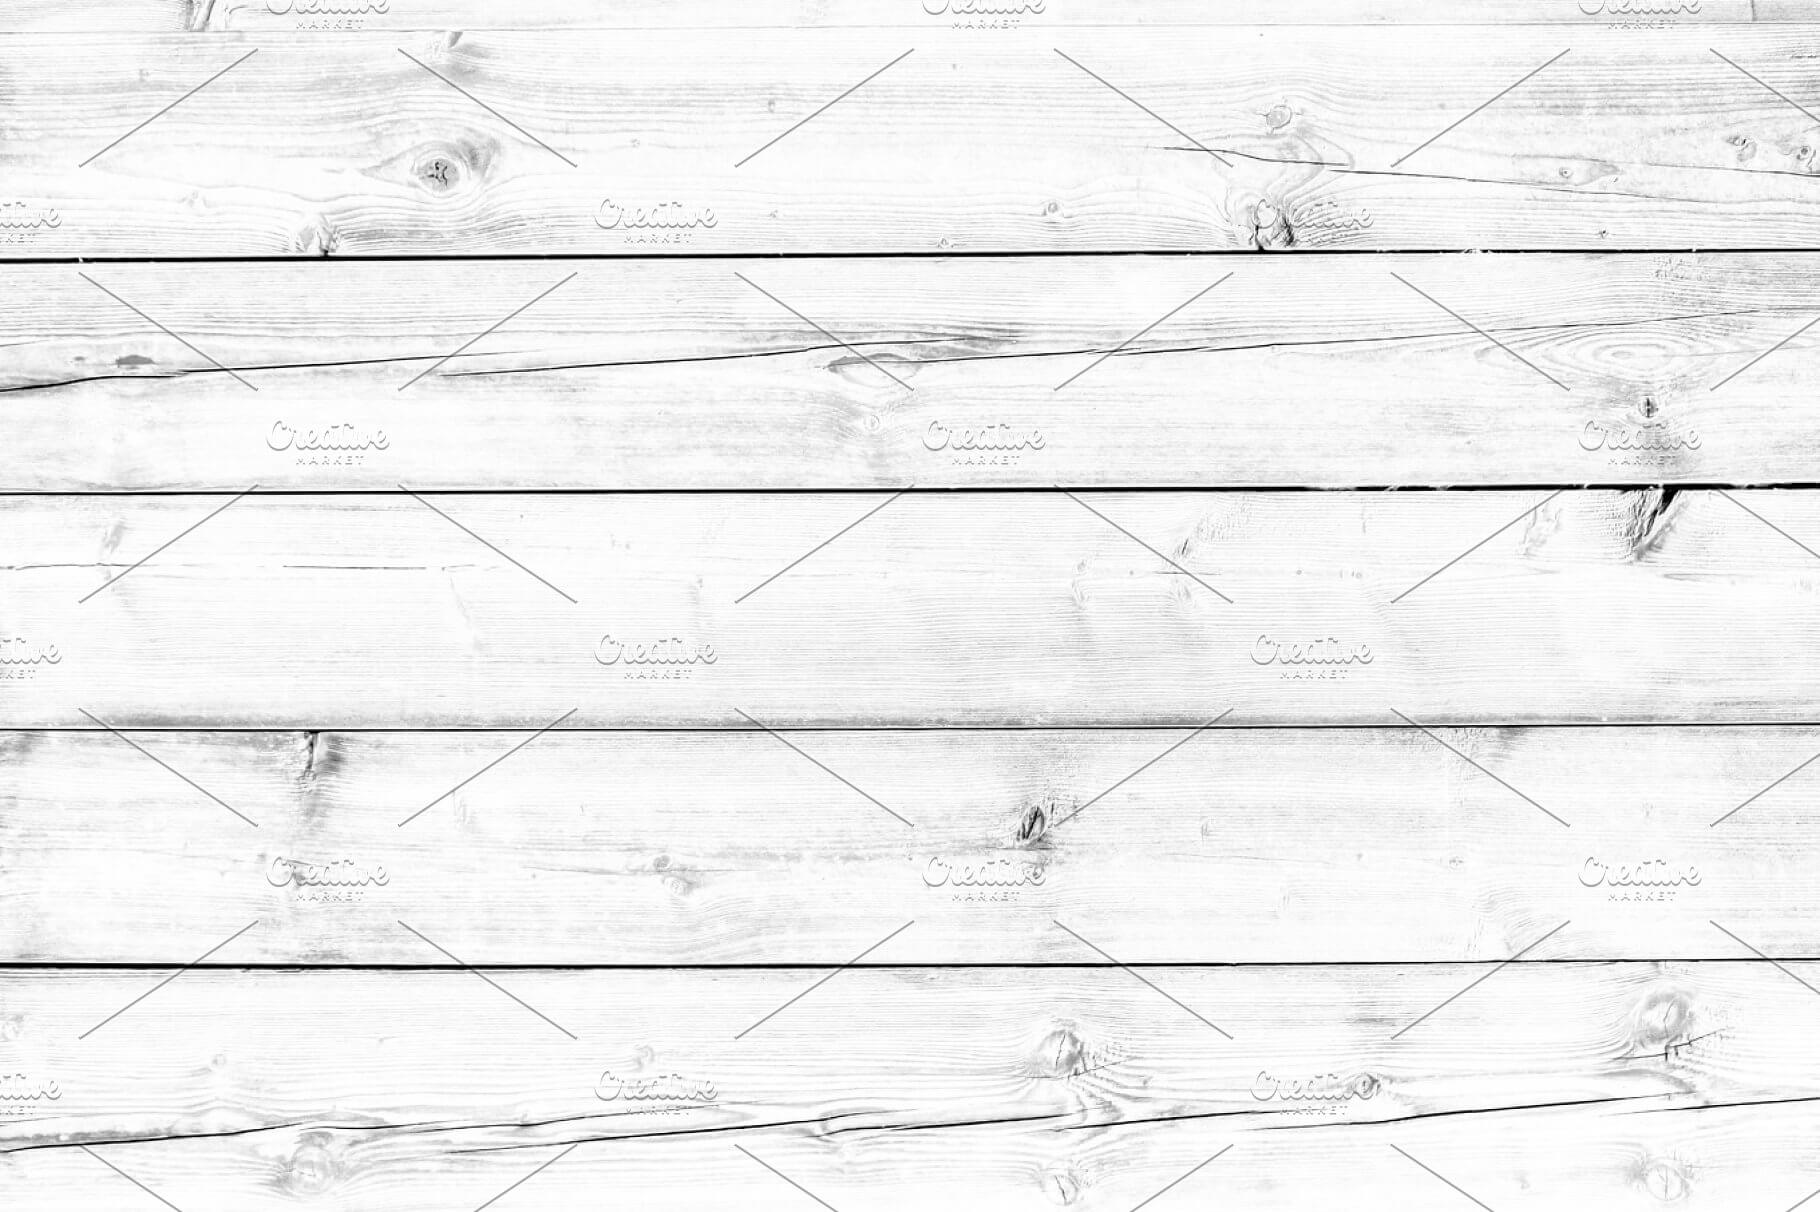 White Wood Background Texture 124 (1)